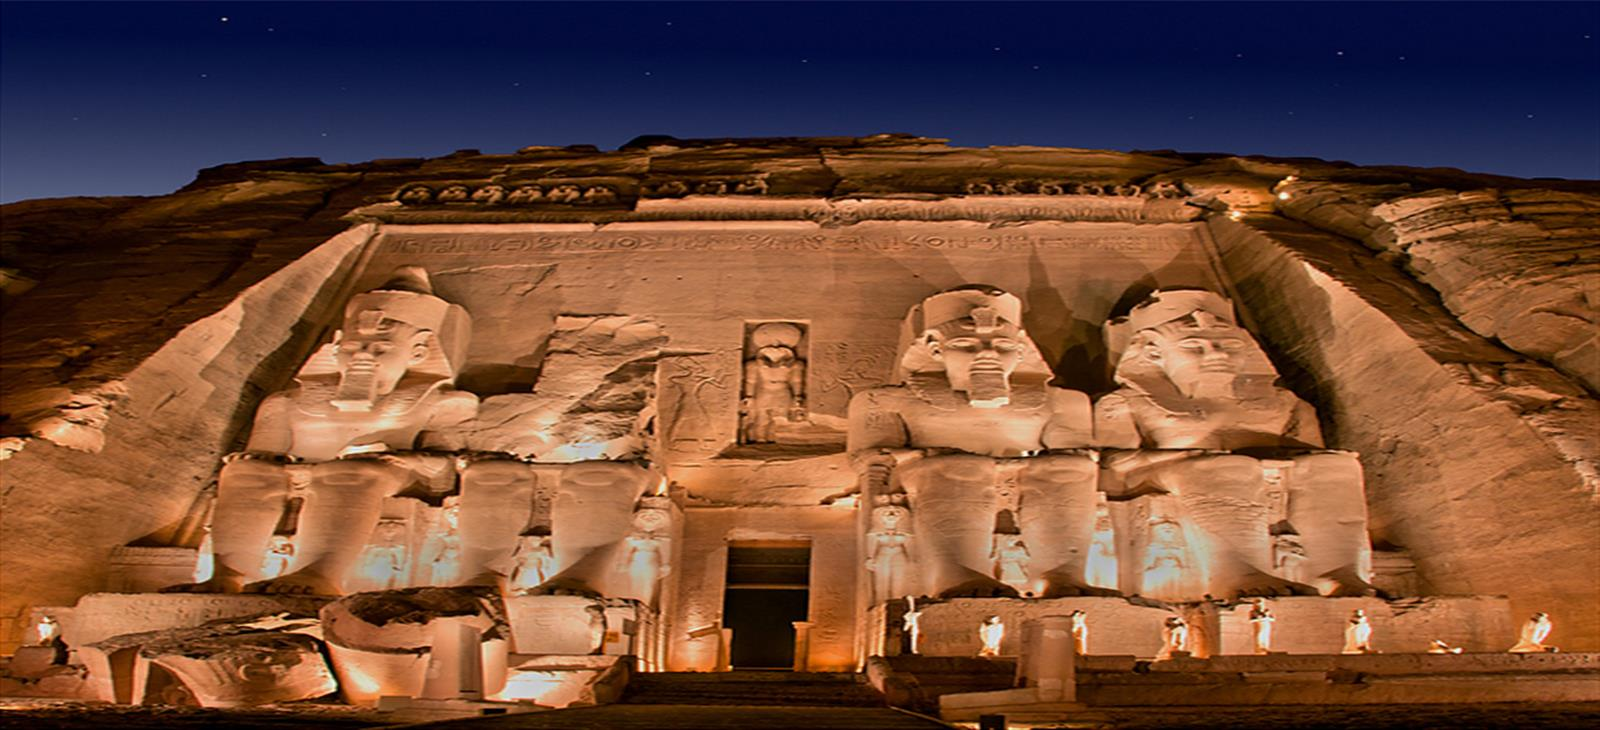 aswan to abu simbel day trip